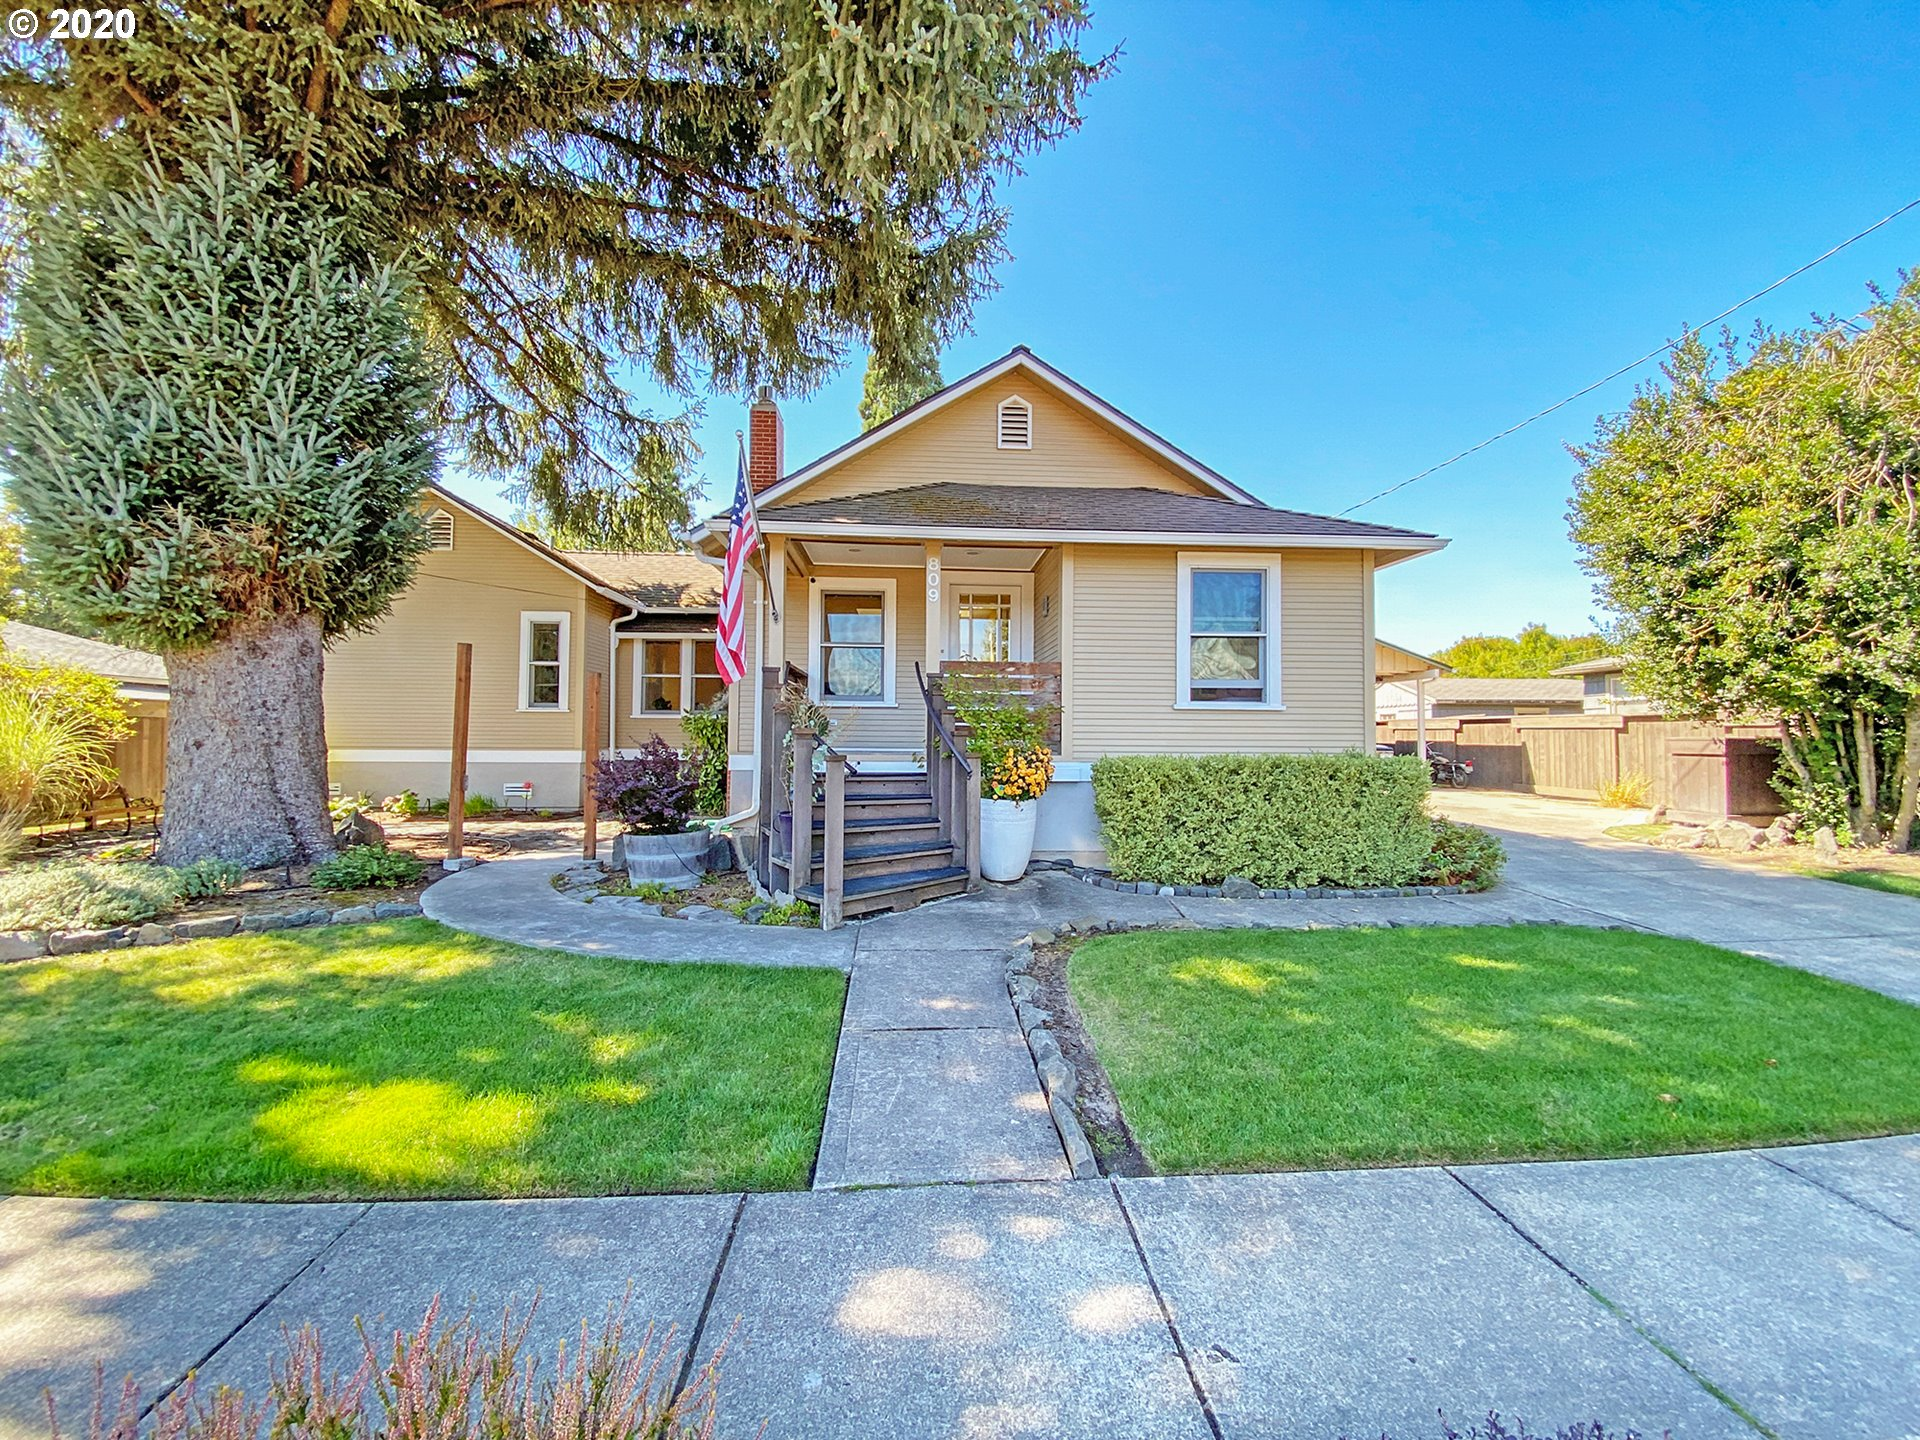 Meticulously maintained & tastefully remodeled historic home blocks to downtown Newberg. High end upgrades include Kolbe&Kolbe-double paned wood windows, newer roof, bamboo floors, nest thermostat, skylights, can lighting, gas fireplace, master suite w/walk-in closet, bath & slider to deck & covered patio. Gorgeous kitchen w/custom cabinets, pantry & Corian counters. Lots of light-Sunny & bright! Walk to shops, wineries & restaurants. Min to River-Rogers Landing. Huge 3rd bedroom. See 3D tour!